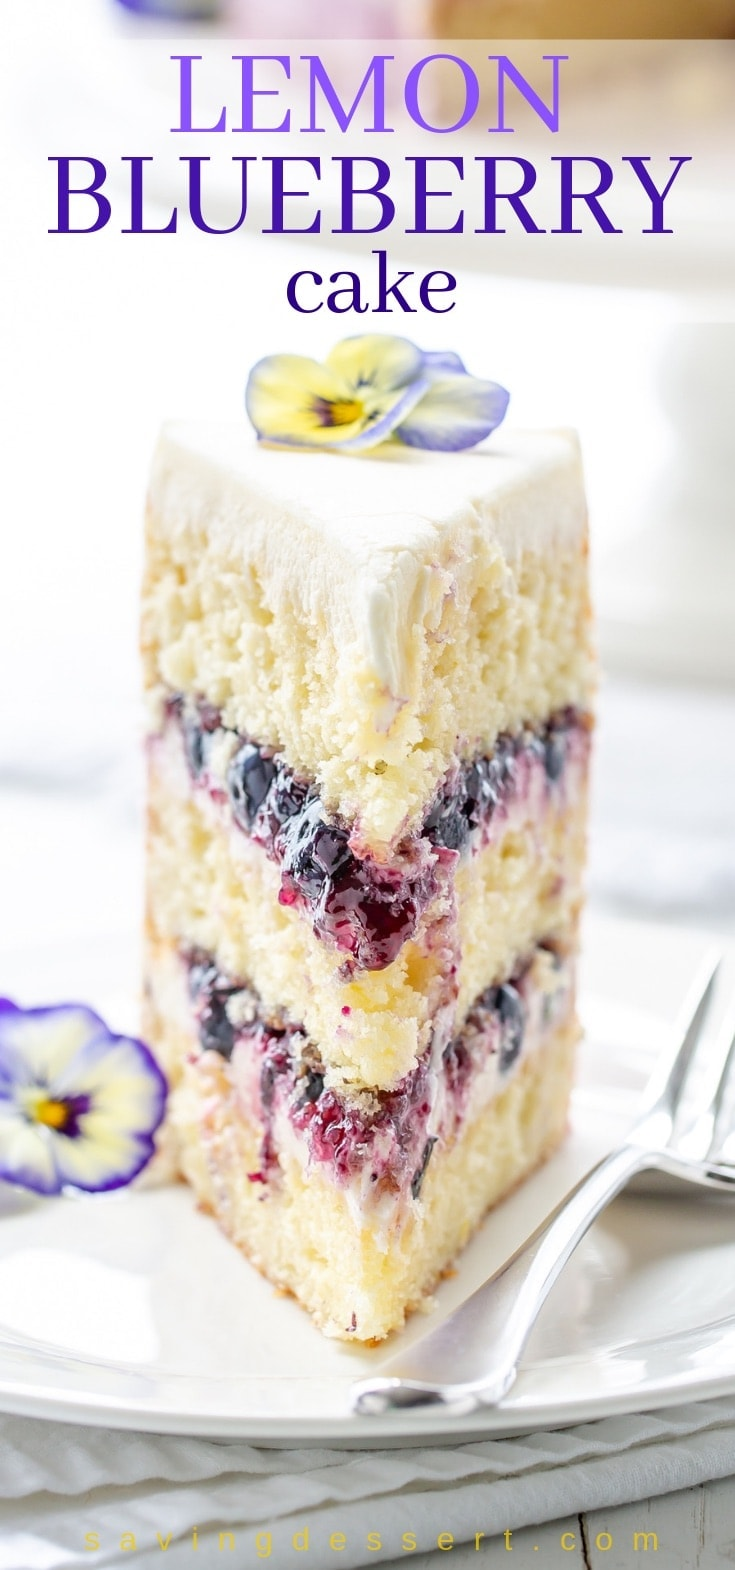 A slice of lemon blueberry cake topped with pansies